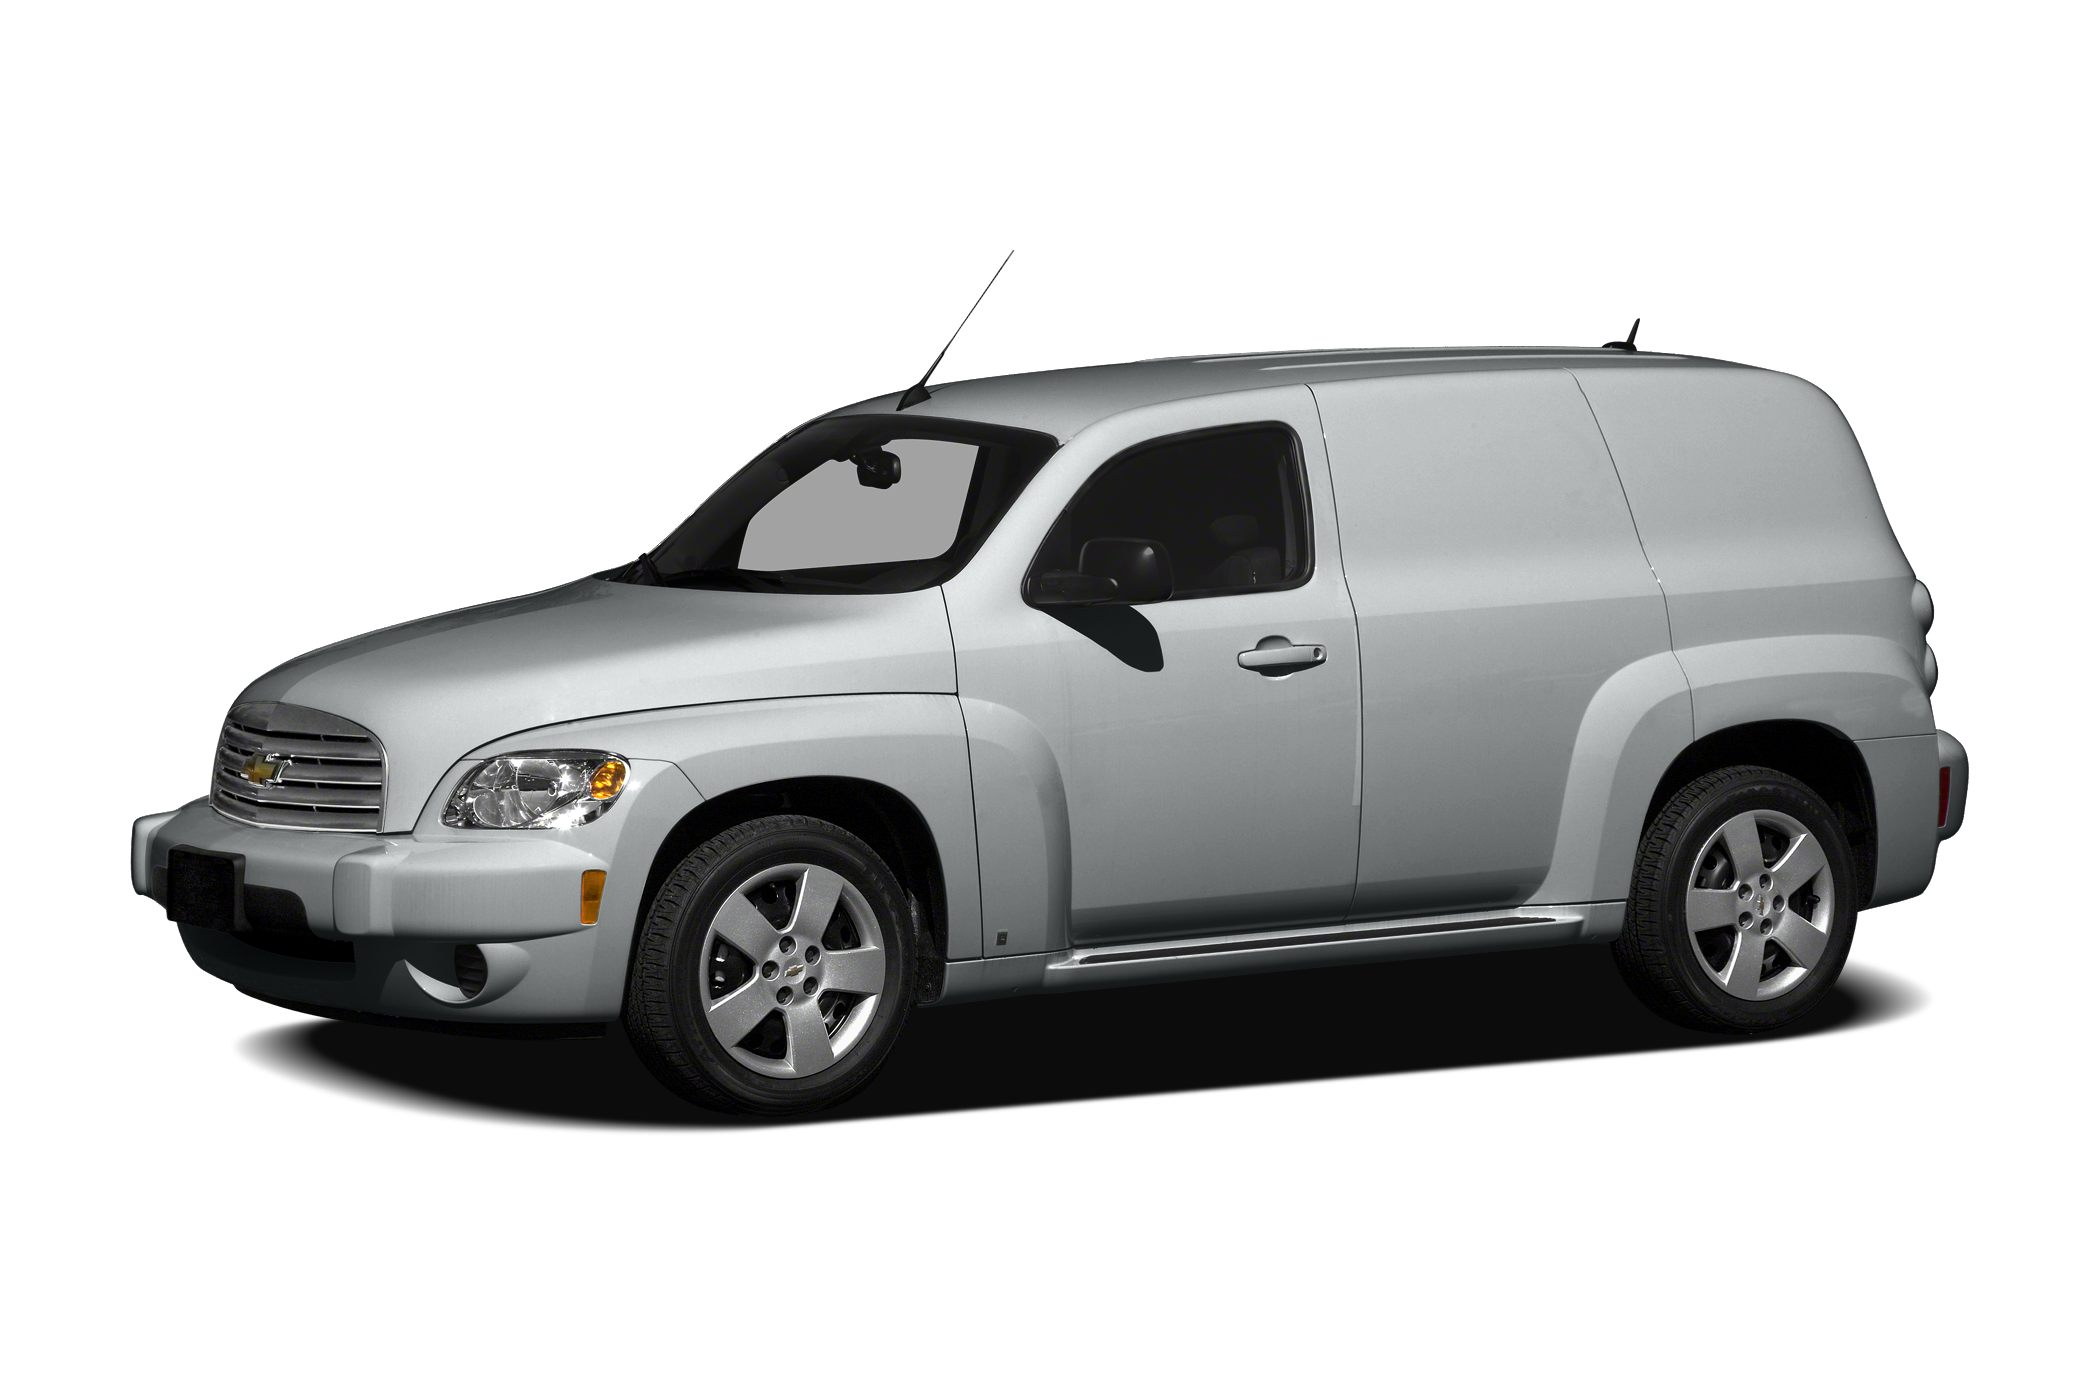 chevrolet hhr recall information chevy recalls and. Black Bedroom Furniture Sets. Home Design Ideas